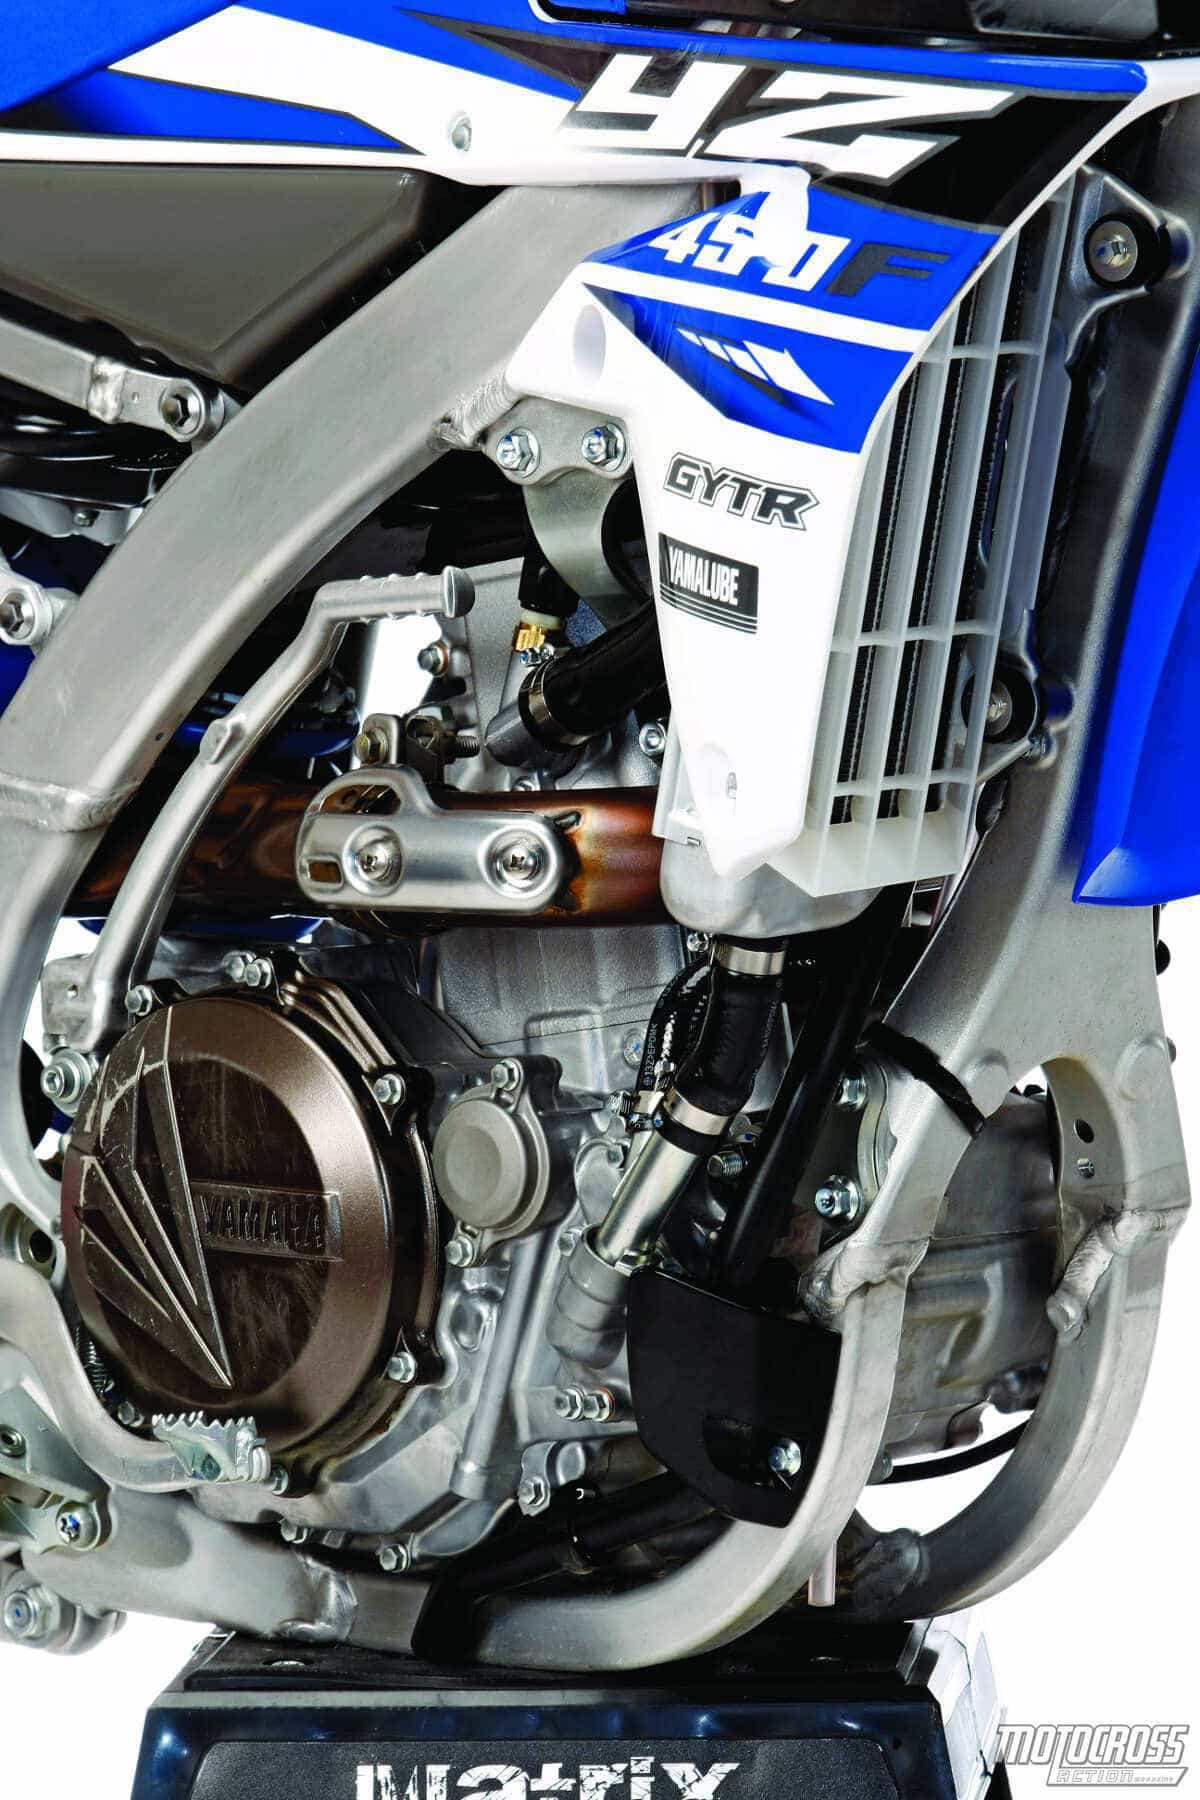 Thanks to the mapping changes, the YZ450F is smoother, more manageable and  exhibits gentlemanly